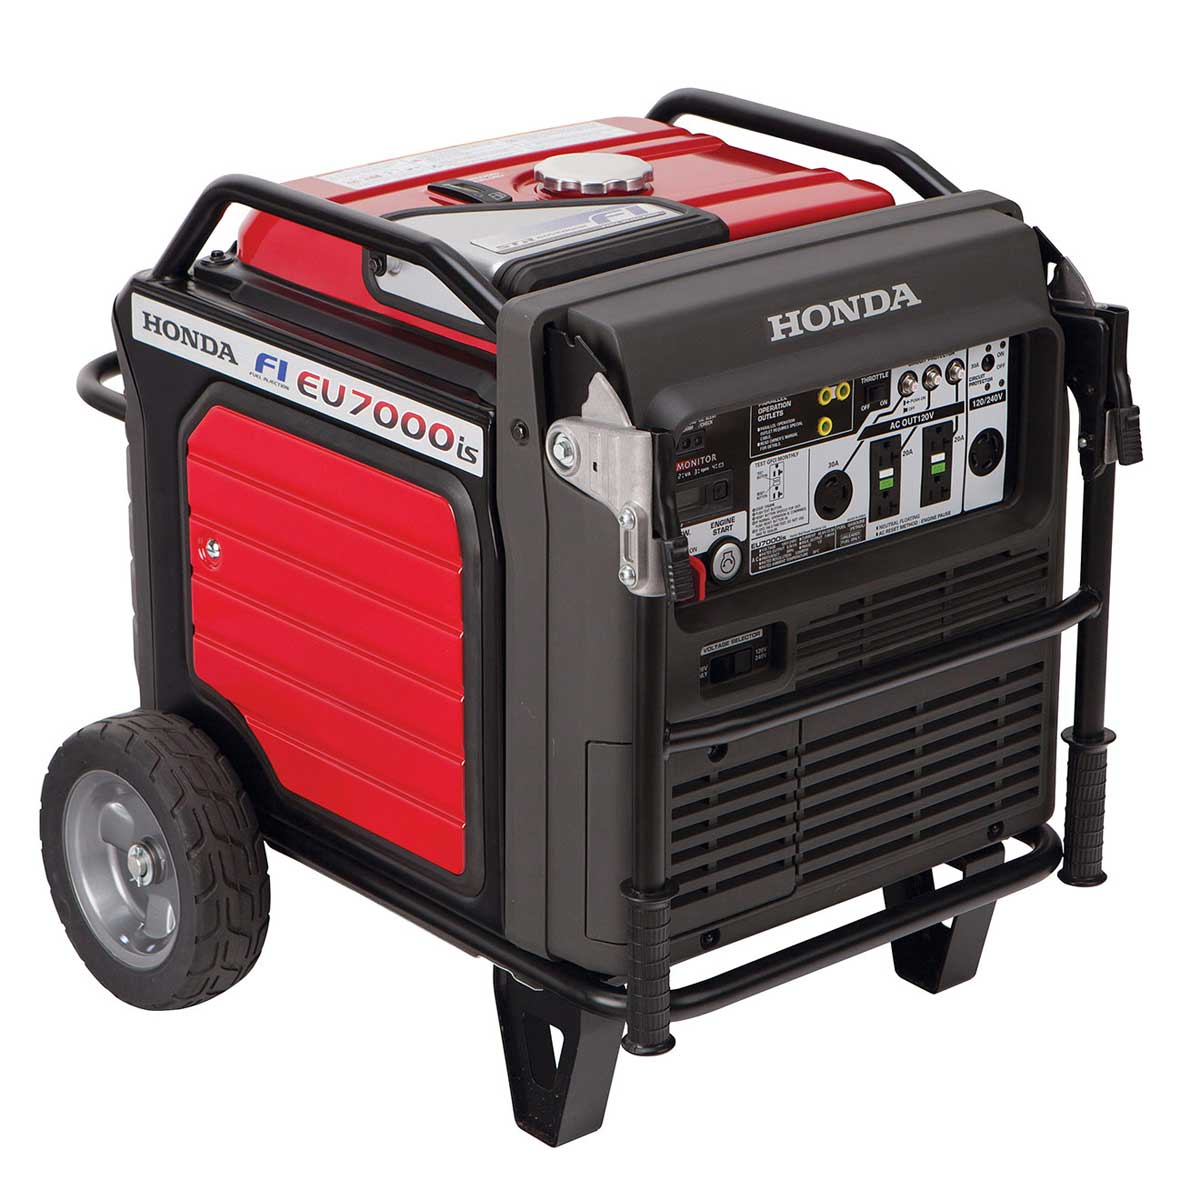 Honda Generator EU7000iS